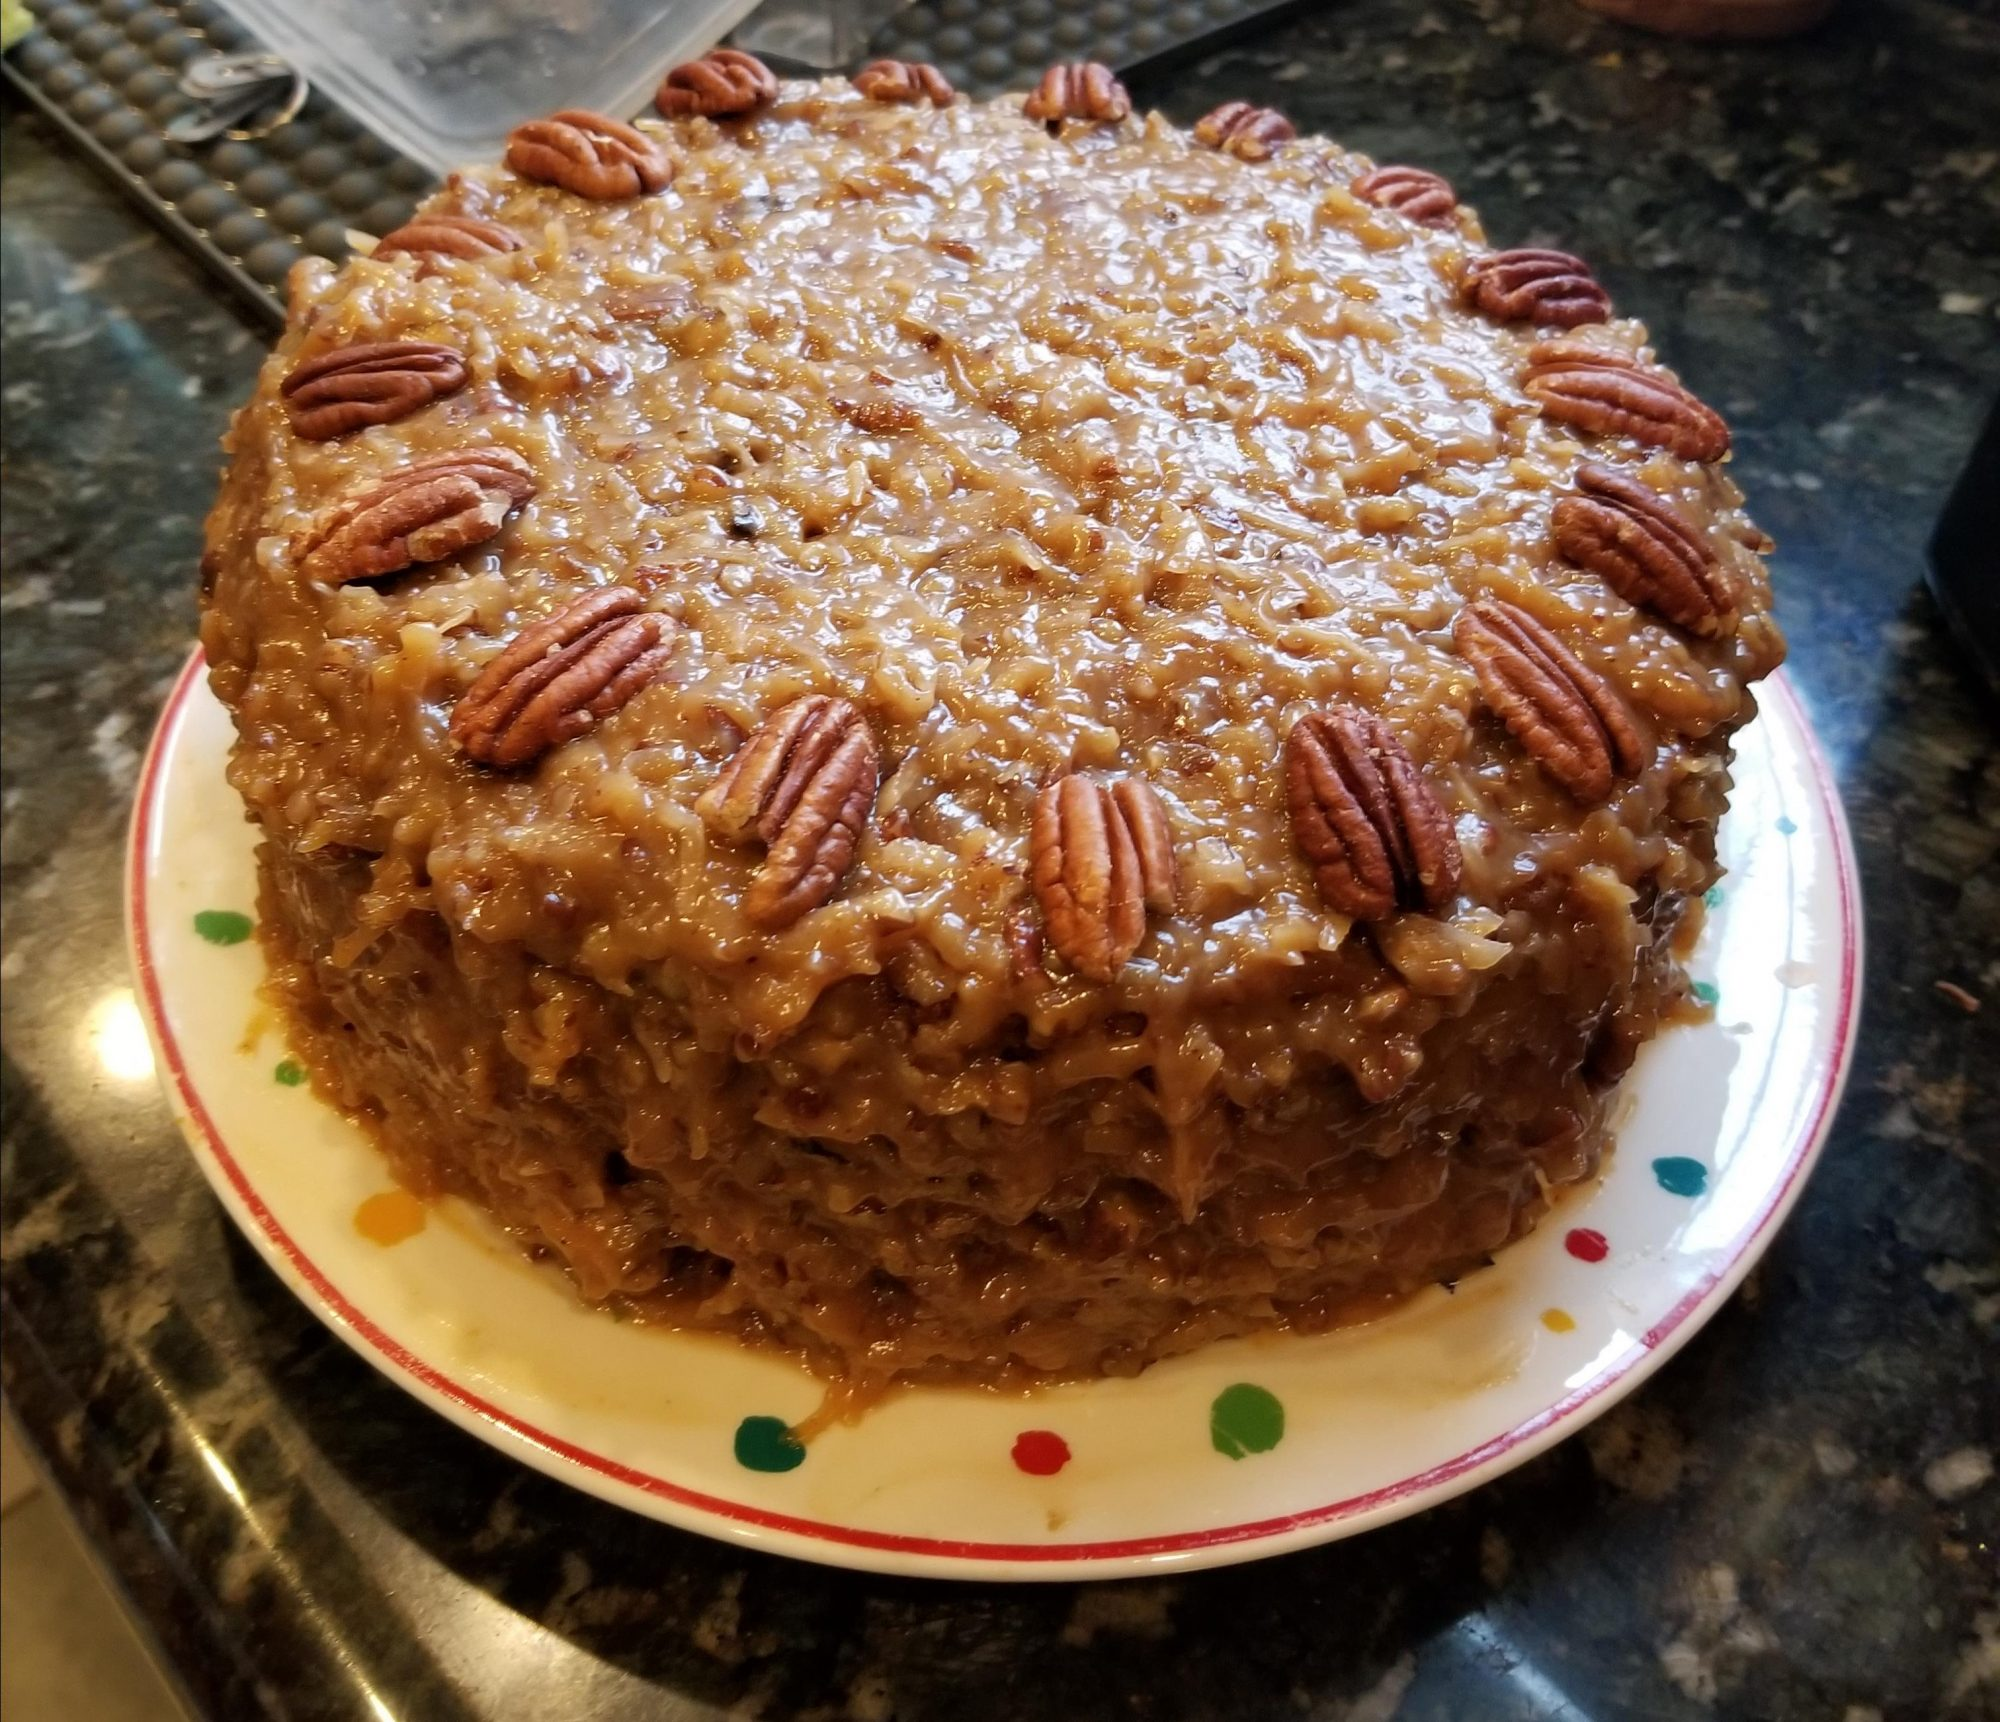 German chocolate cake decorated with pecans